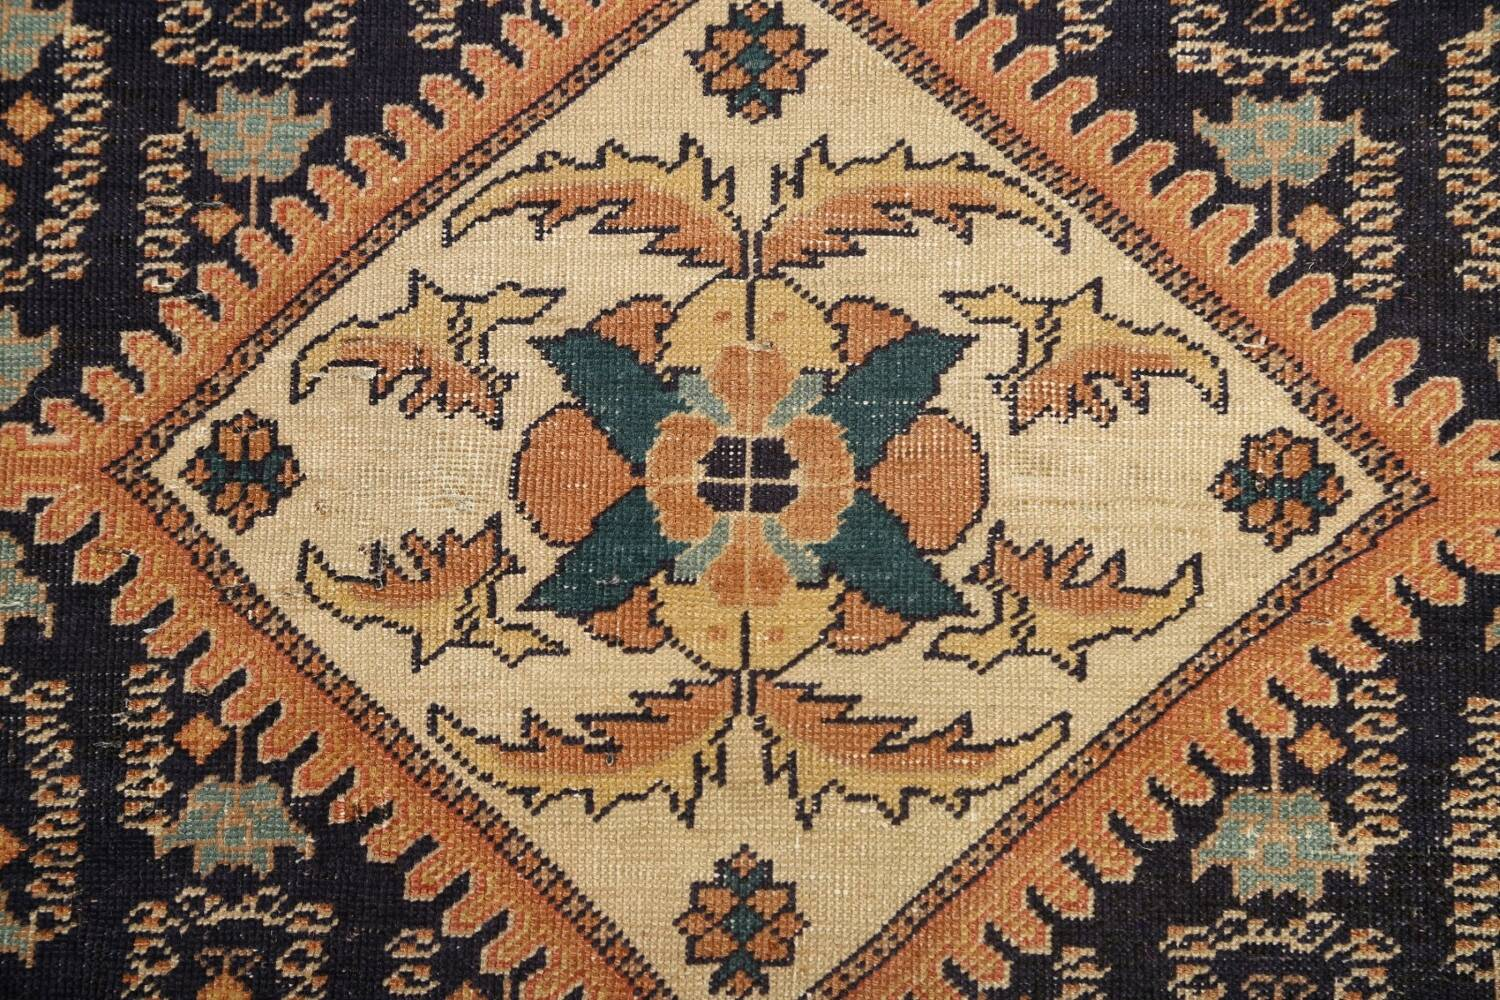 Antique 100% Vegetable Dye Sultanabad Persian Area Rug 4x5 image 10